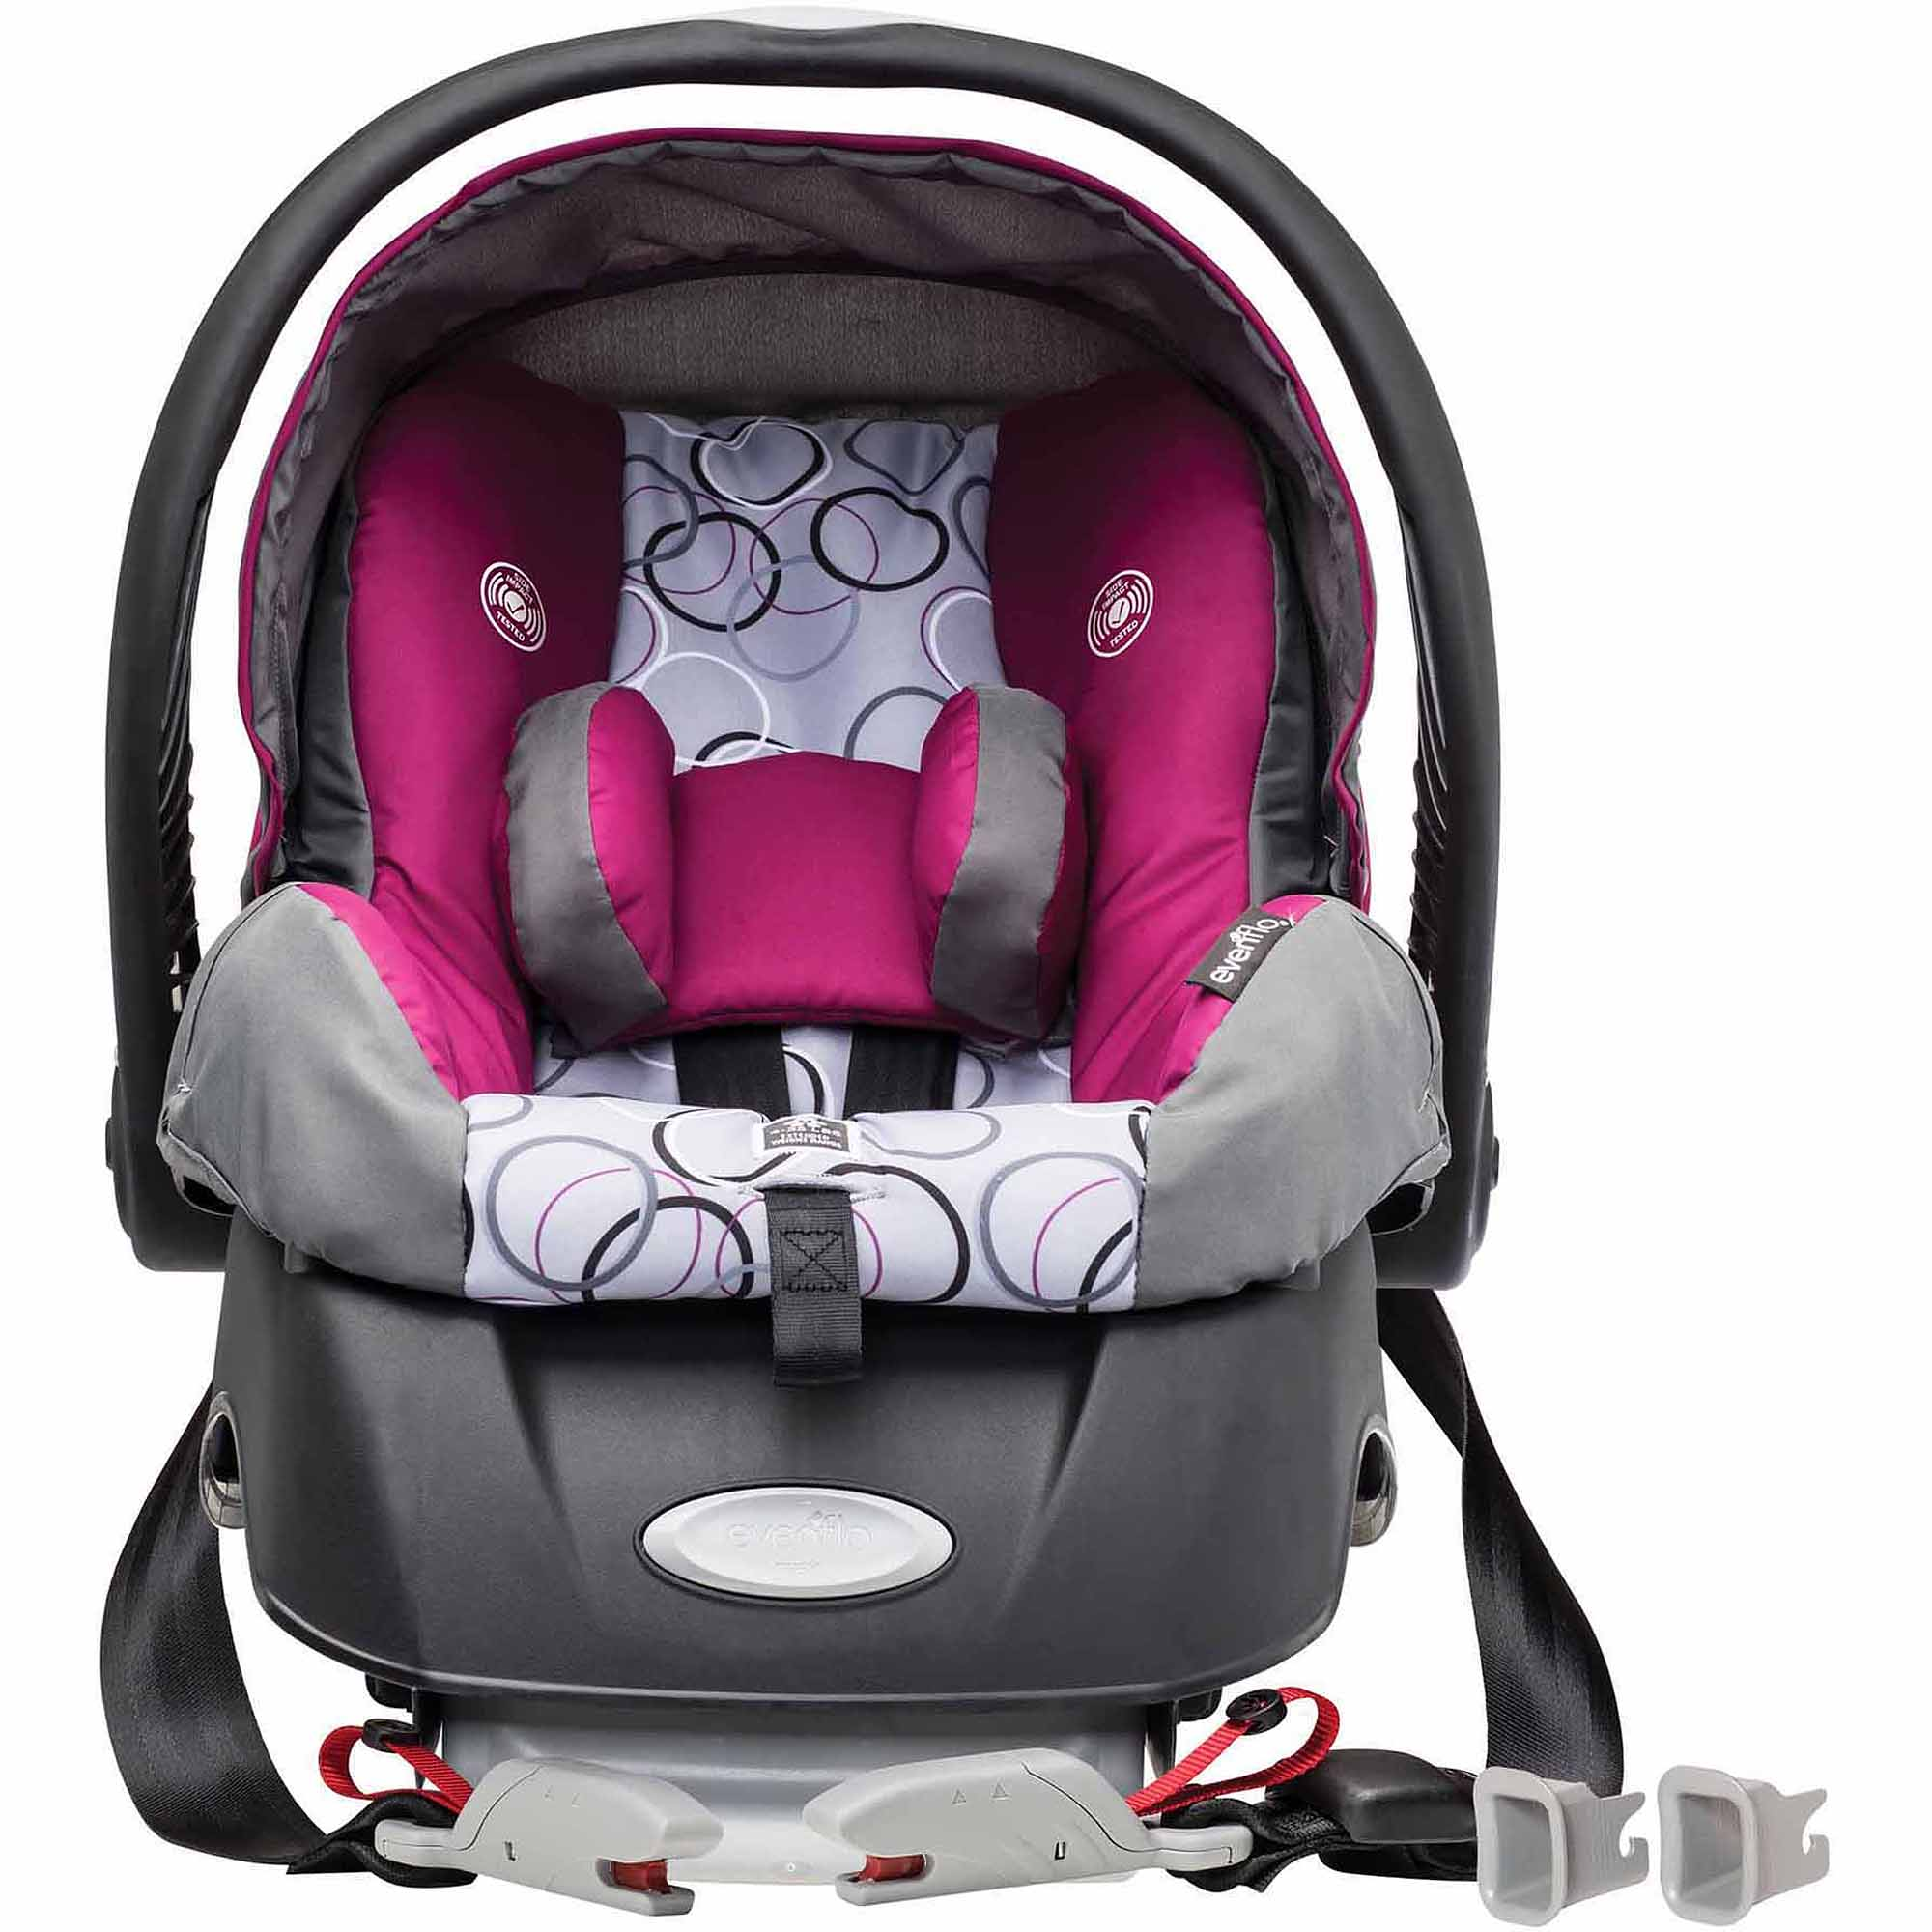 evenflo embrace select infant car seat with sure safe installation evangeline ebay. Black Bedroom Furniture Sets. Home Design Ideas